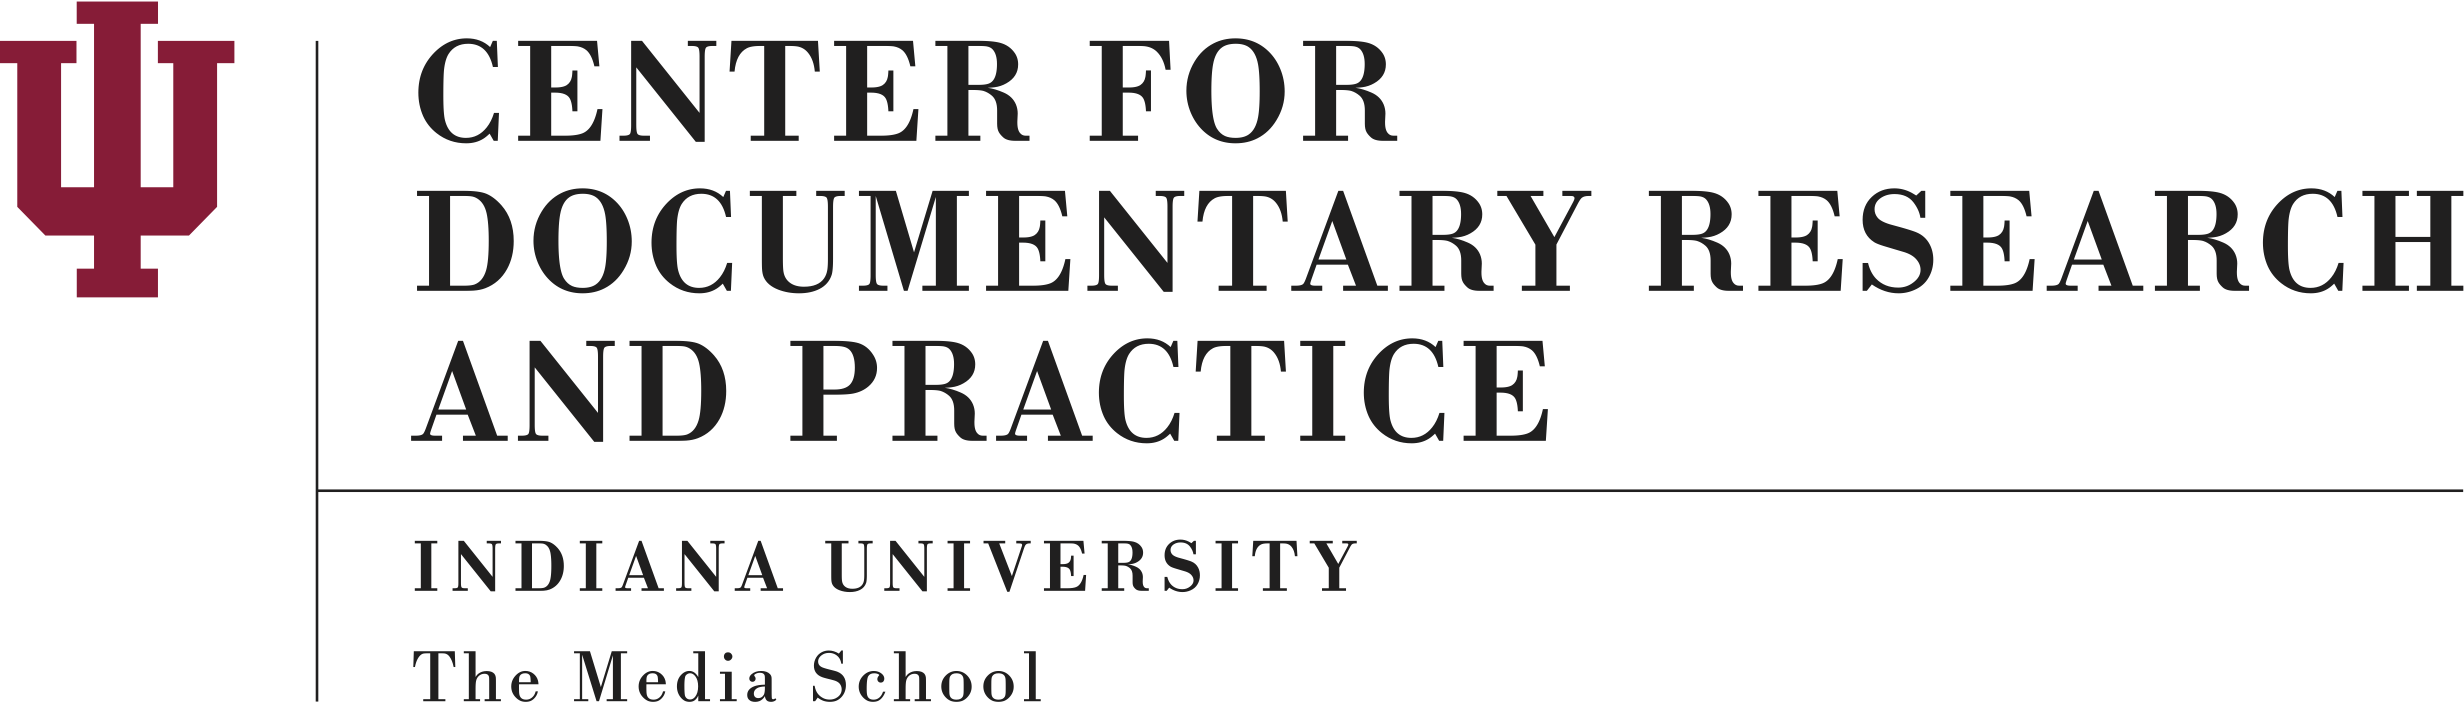 Center for Documentary Research and Practice logo